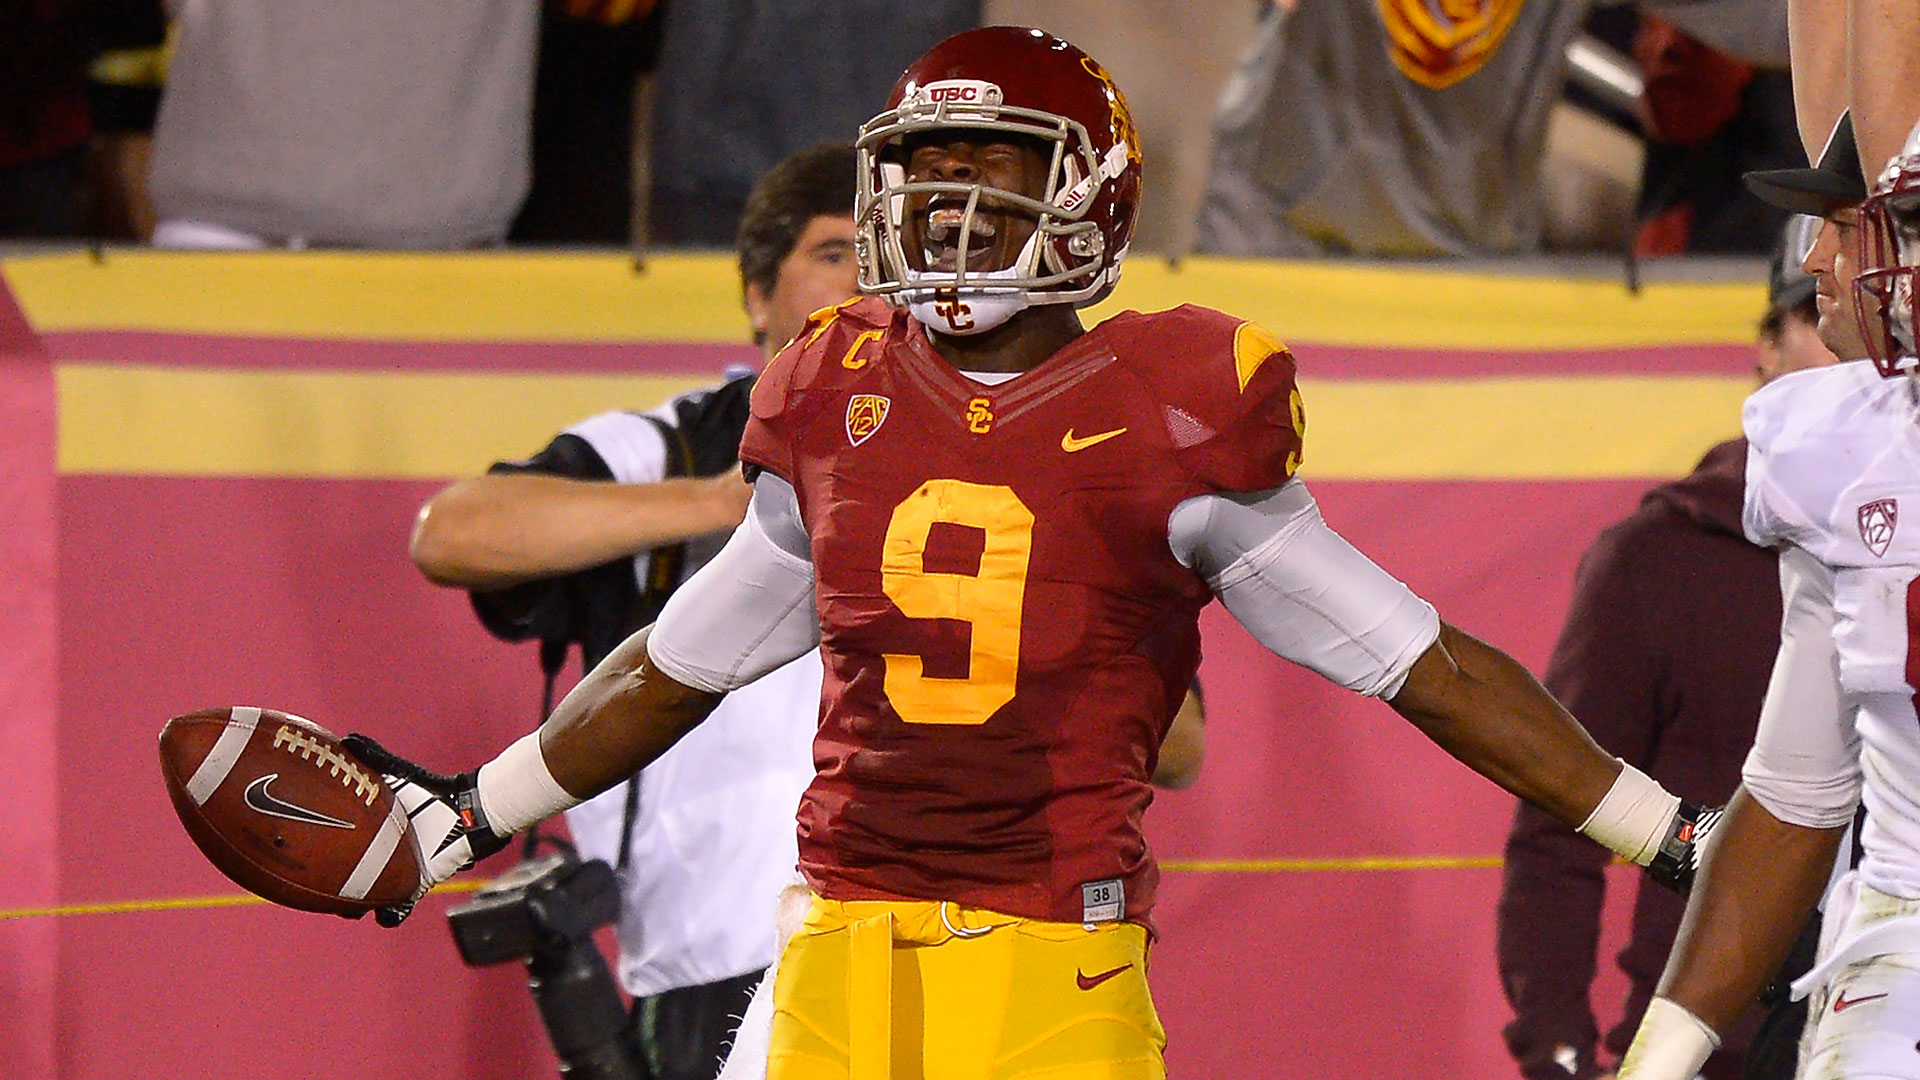 2014 NFL Draft -- Jaguars select WRs Marqise Lee and Allen Robinson in second round